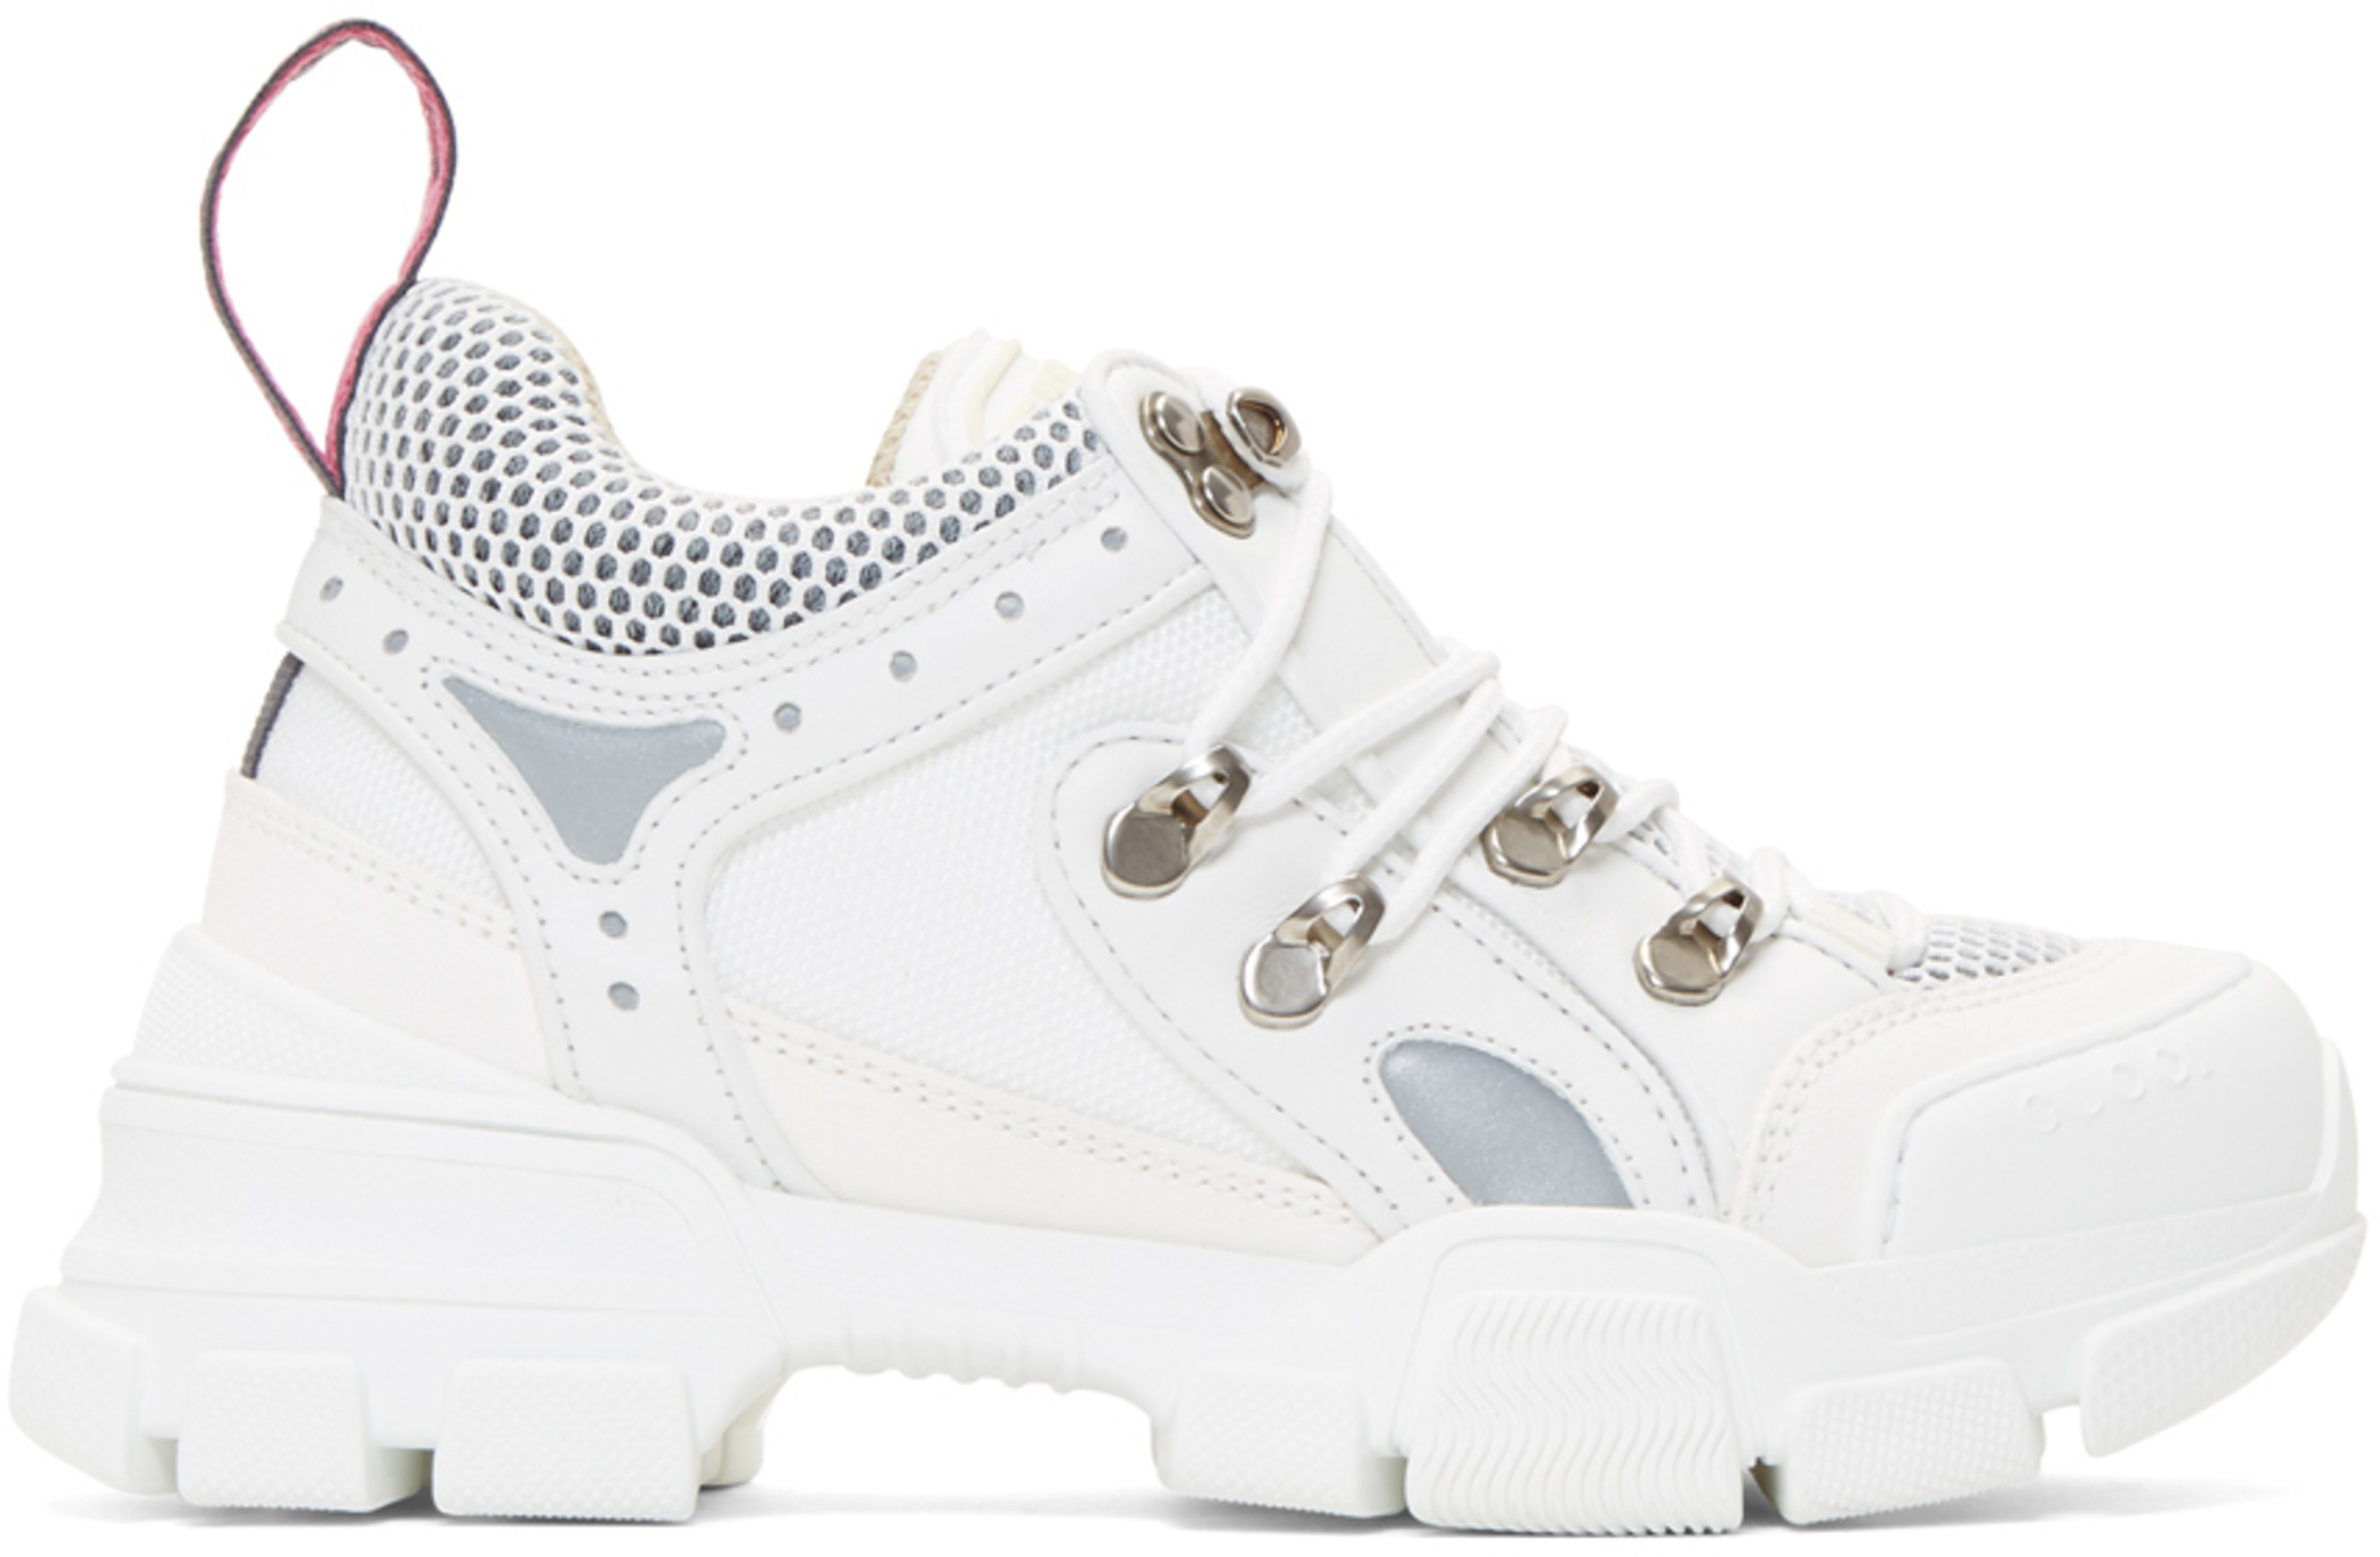 495639aaa01 Gucci sneakers for Women